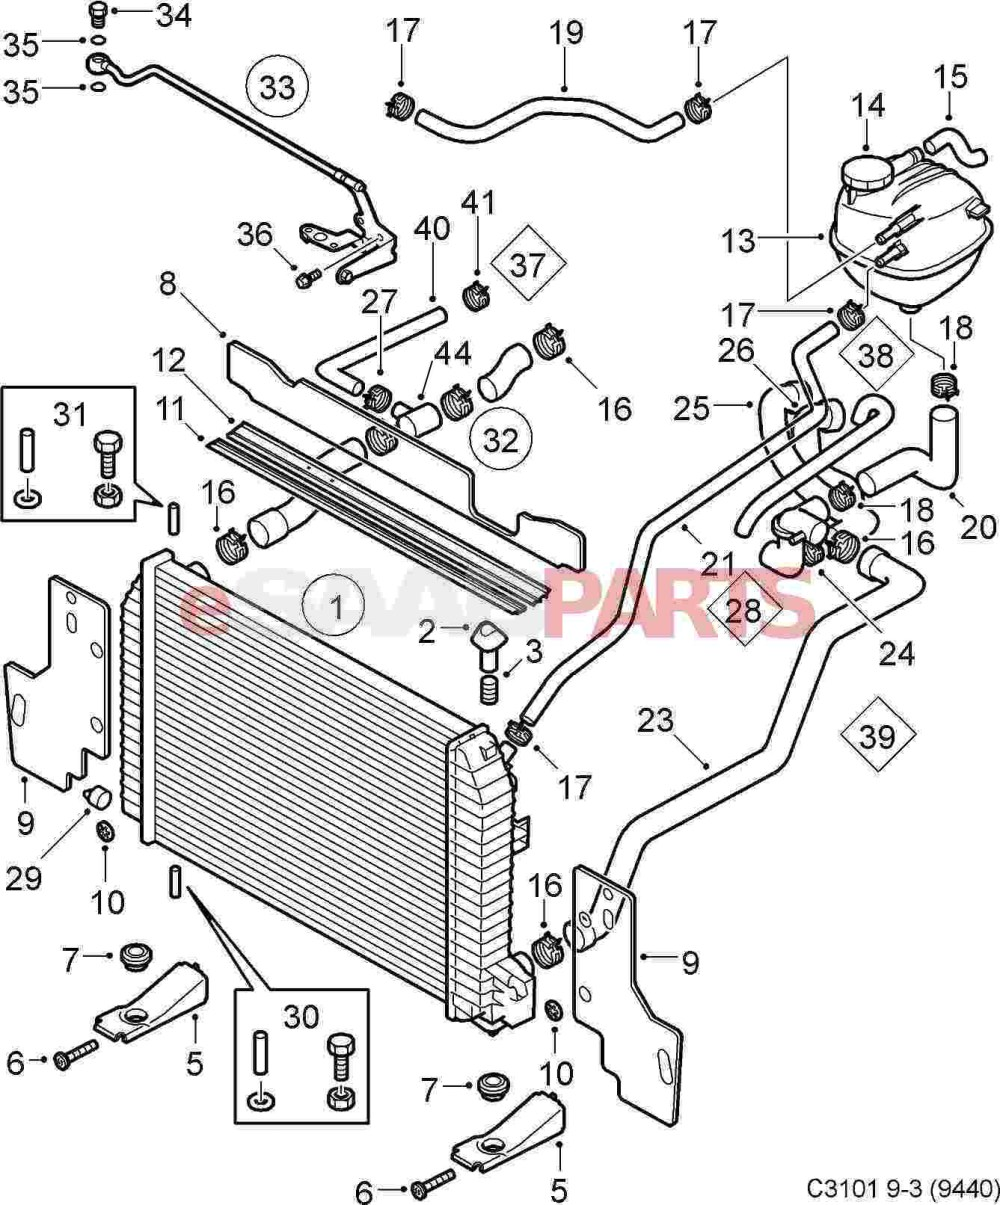 medium resolution of saab cooling system diagram detailed wiring diagram rh 7 6 ocotillo paysage com saab 9 5 engine diagram saab diagram sohc